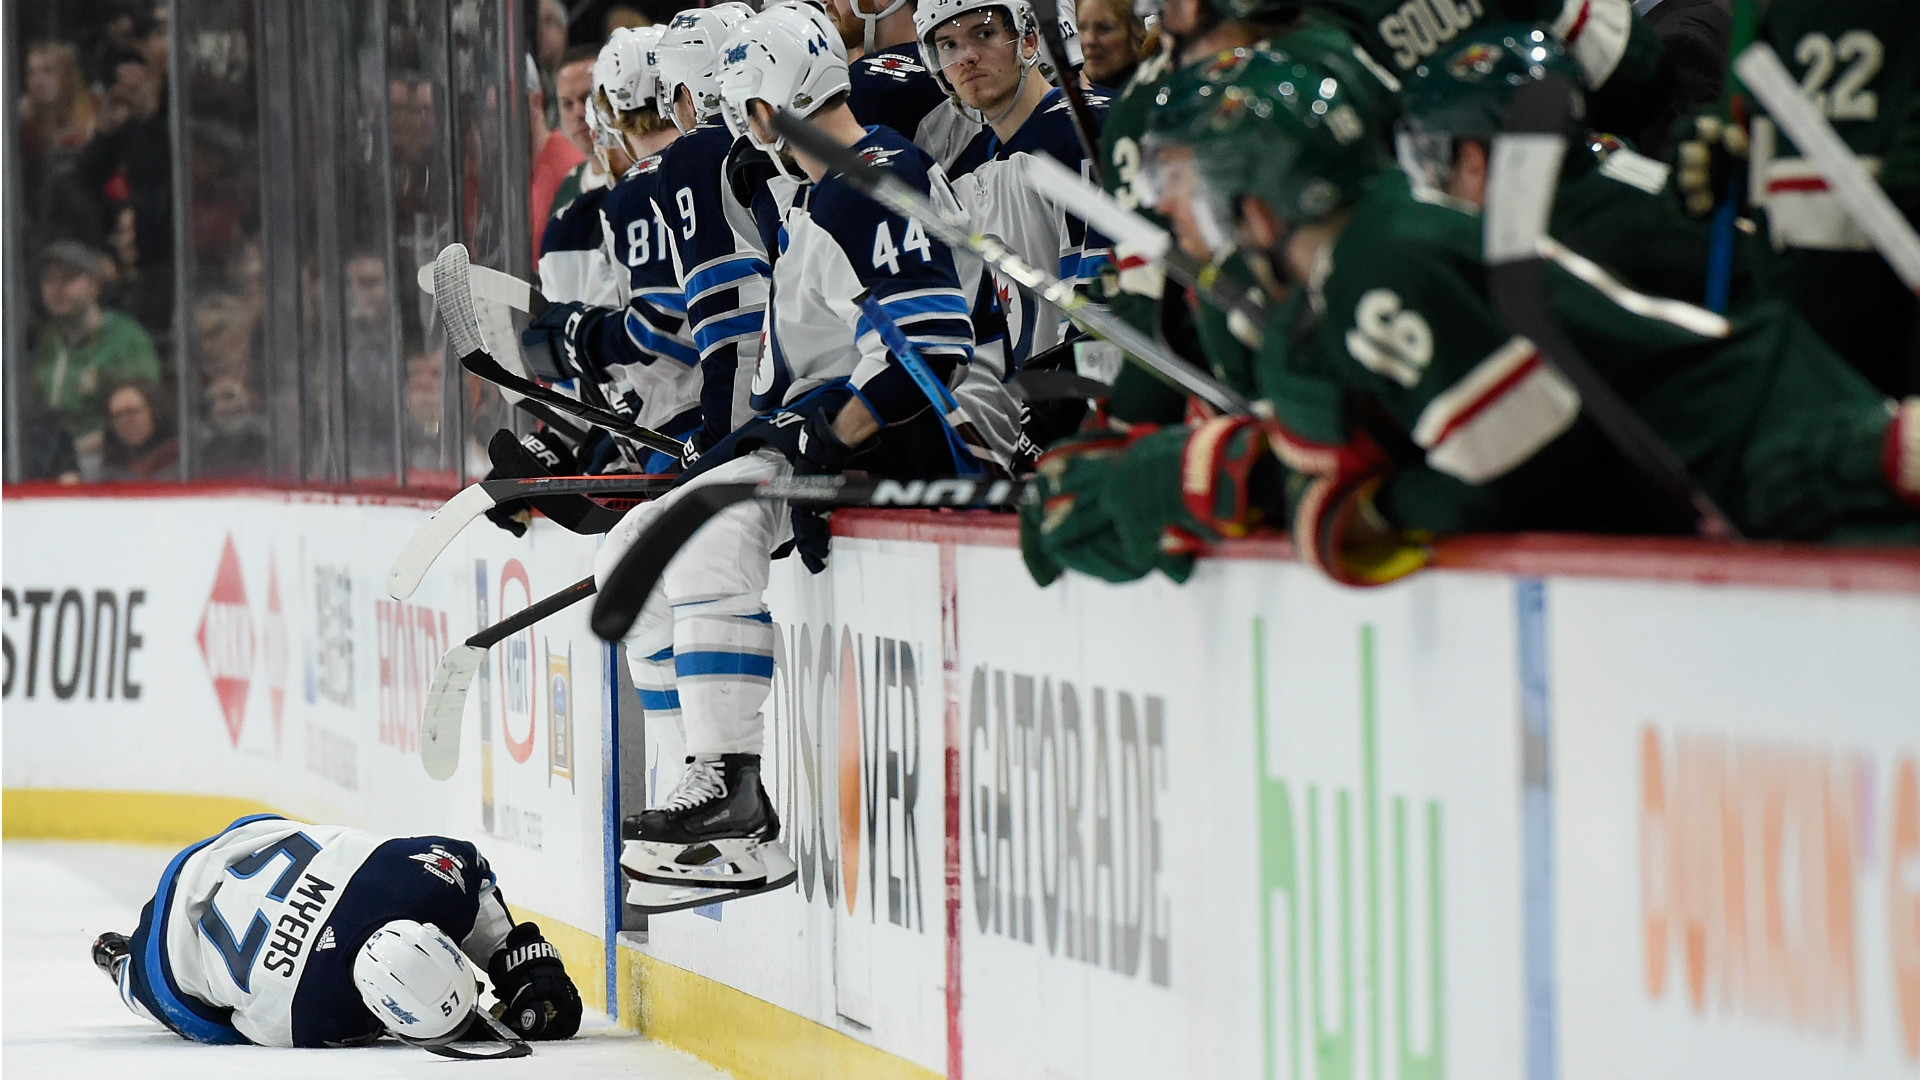 Jets defenseman Morrissey suspended 1 game